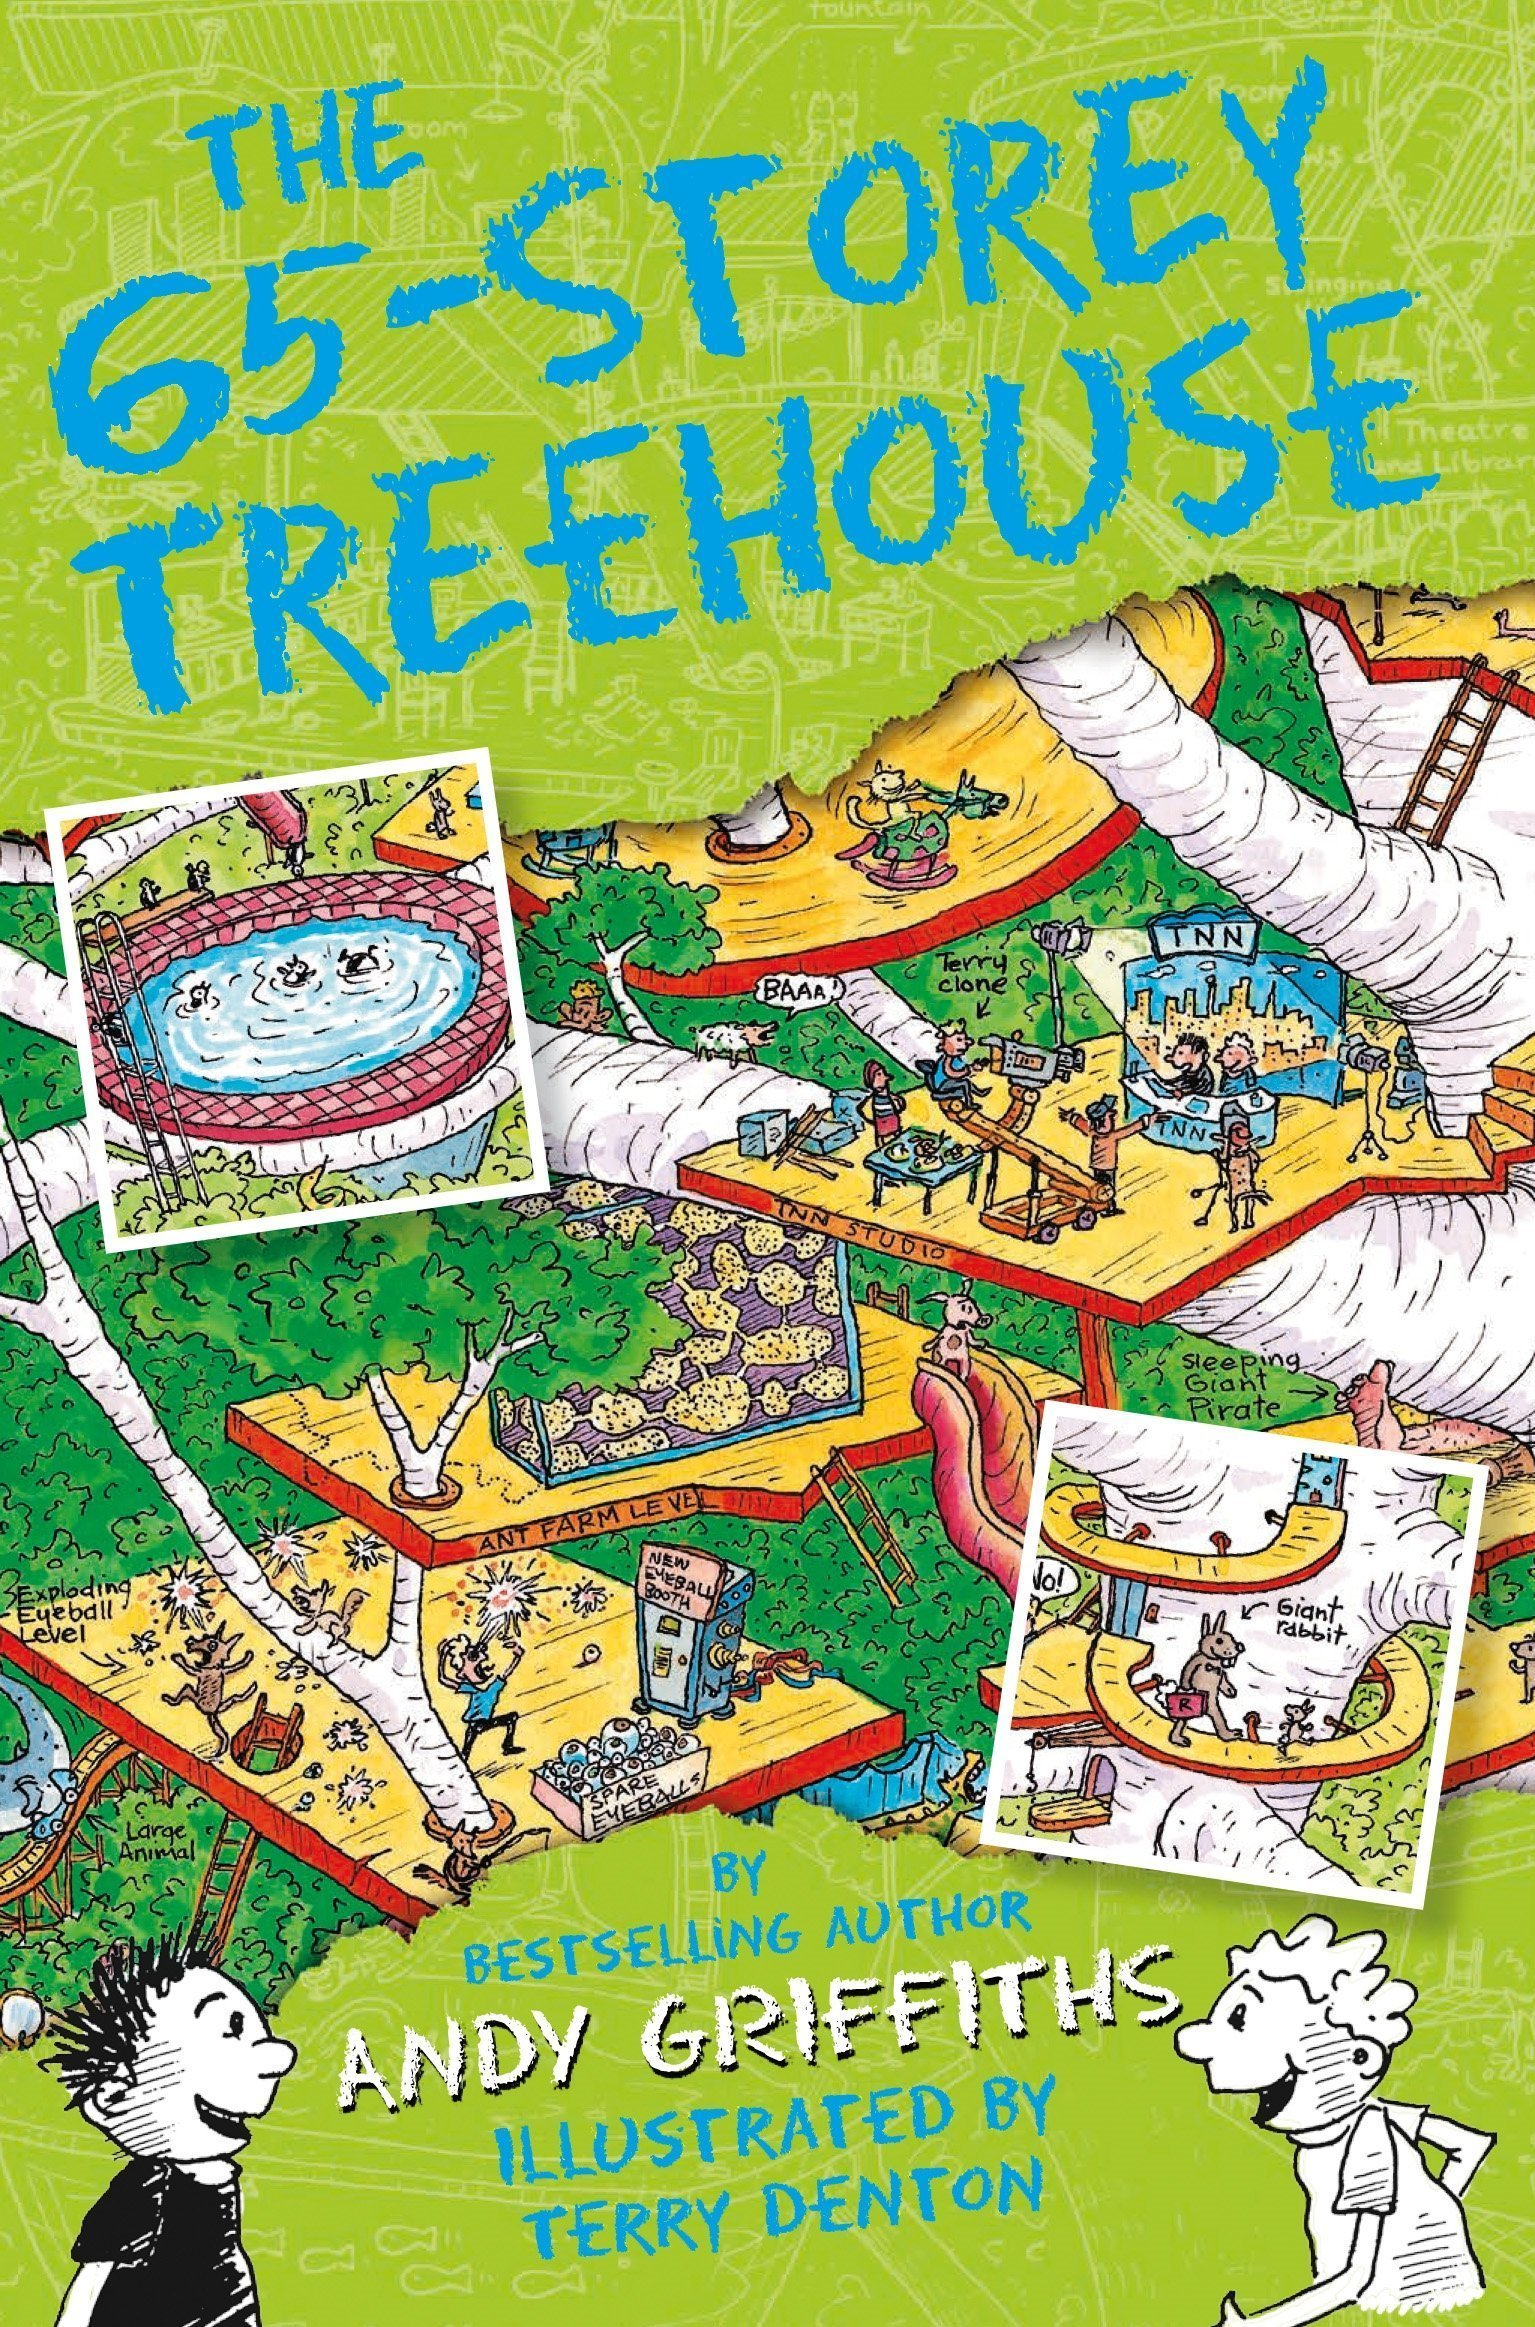 Andy Griffiths Treehouse Part - 39: Treehouse Books Collection Andy Griffiths 5 Books Bundle (The 65-Storey  Treehouse, The 52-Storey Treehouse, The 39-Storey Treehouse, The 13-Storey  Treehouse ...